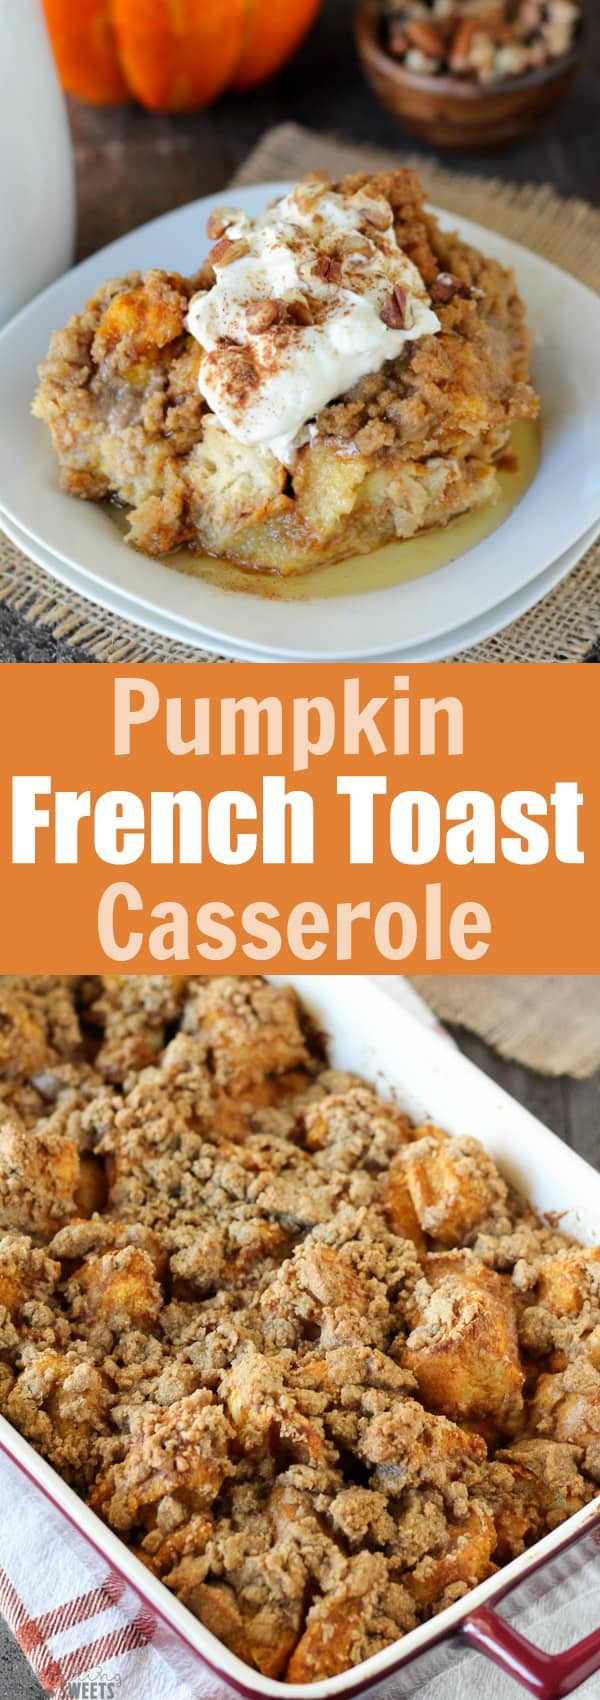 Baked Pumpkin French Toast Casserole - An easy make-ahead dish for breakfast, brunch or holiday entertaining.